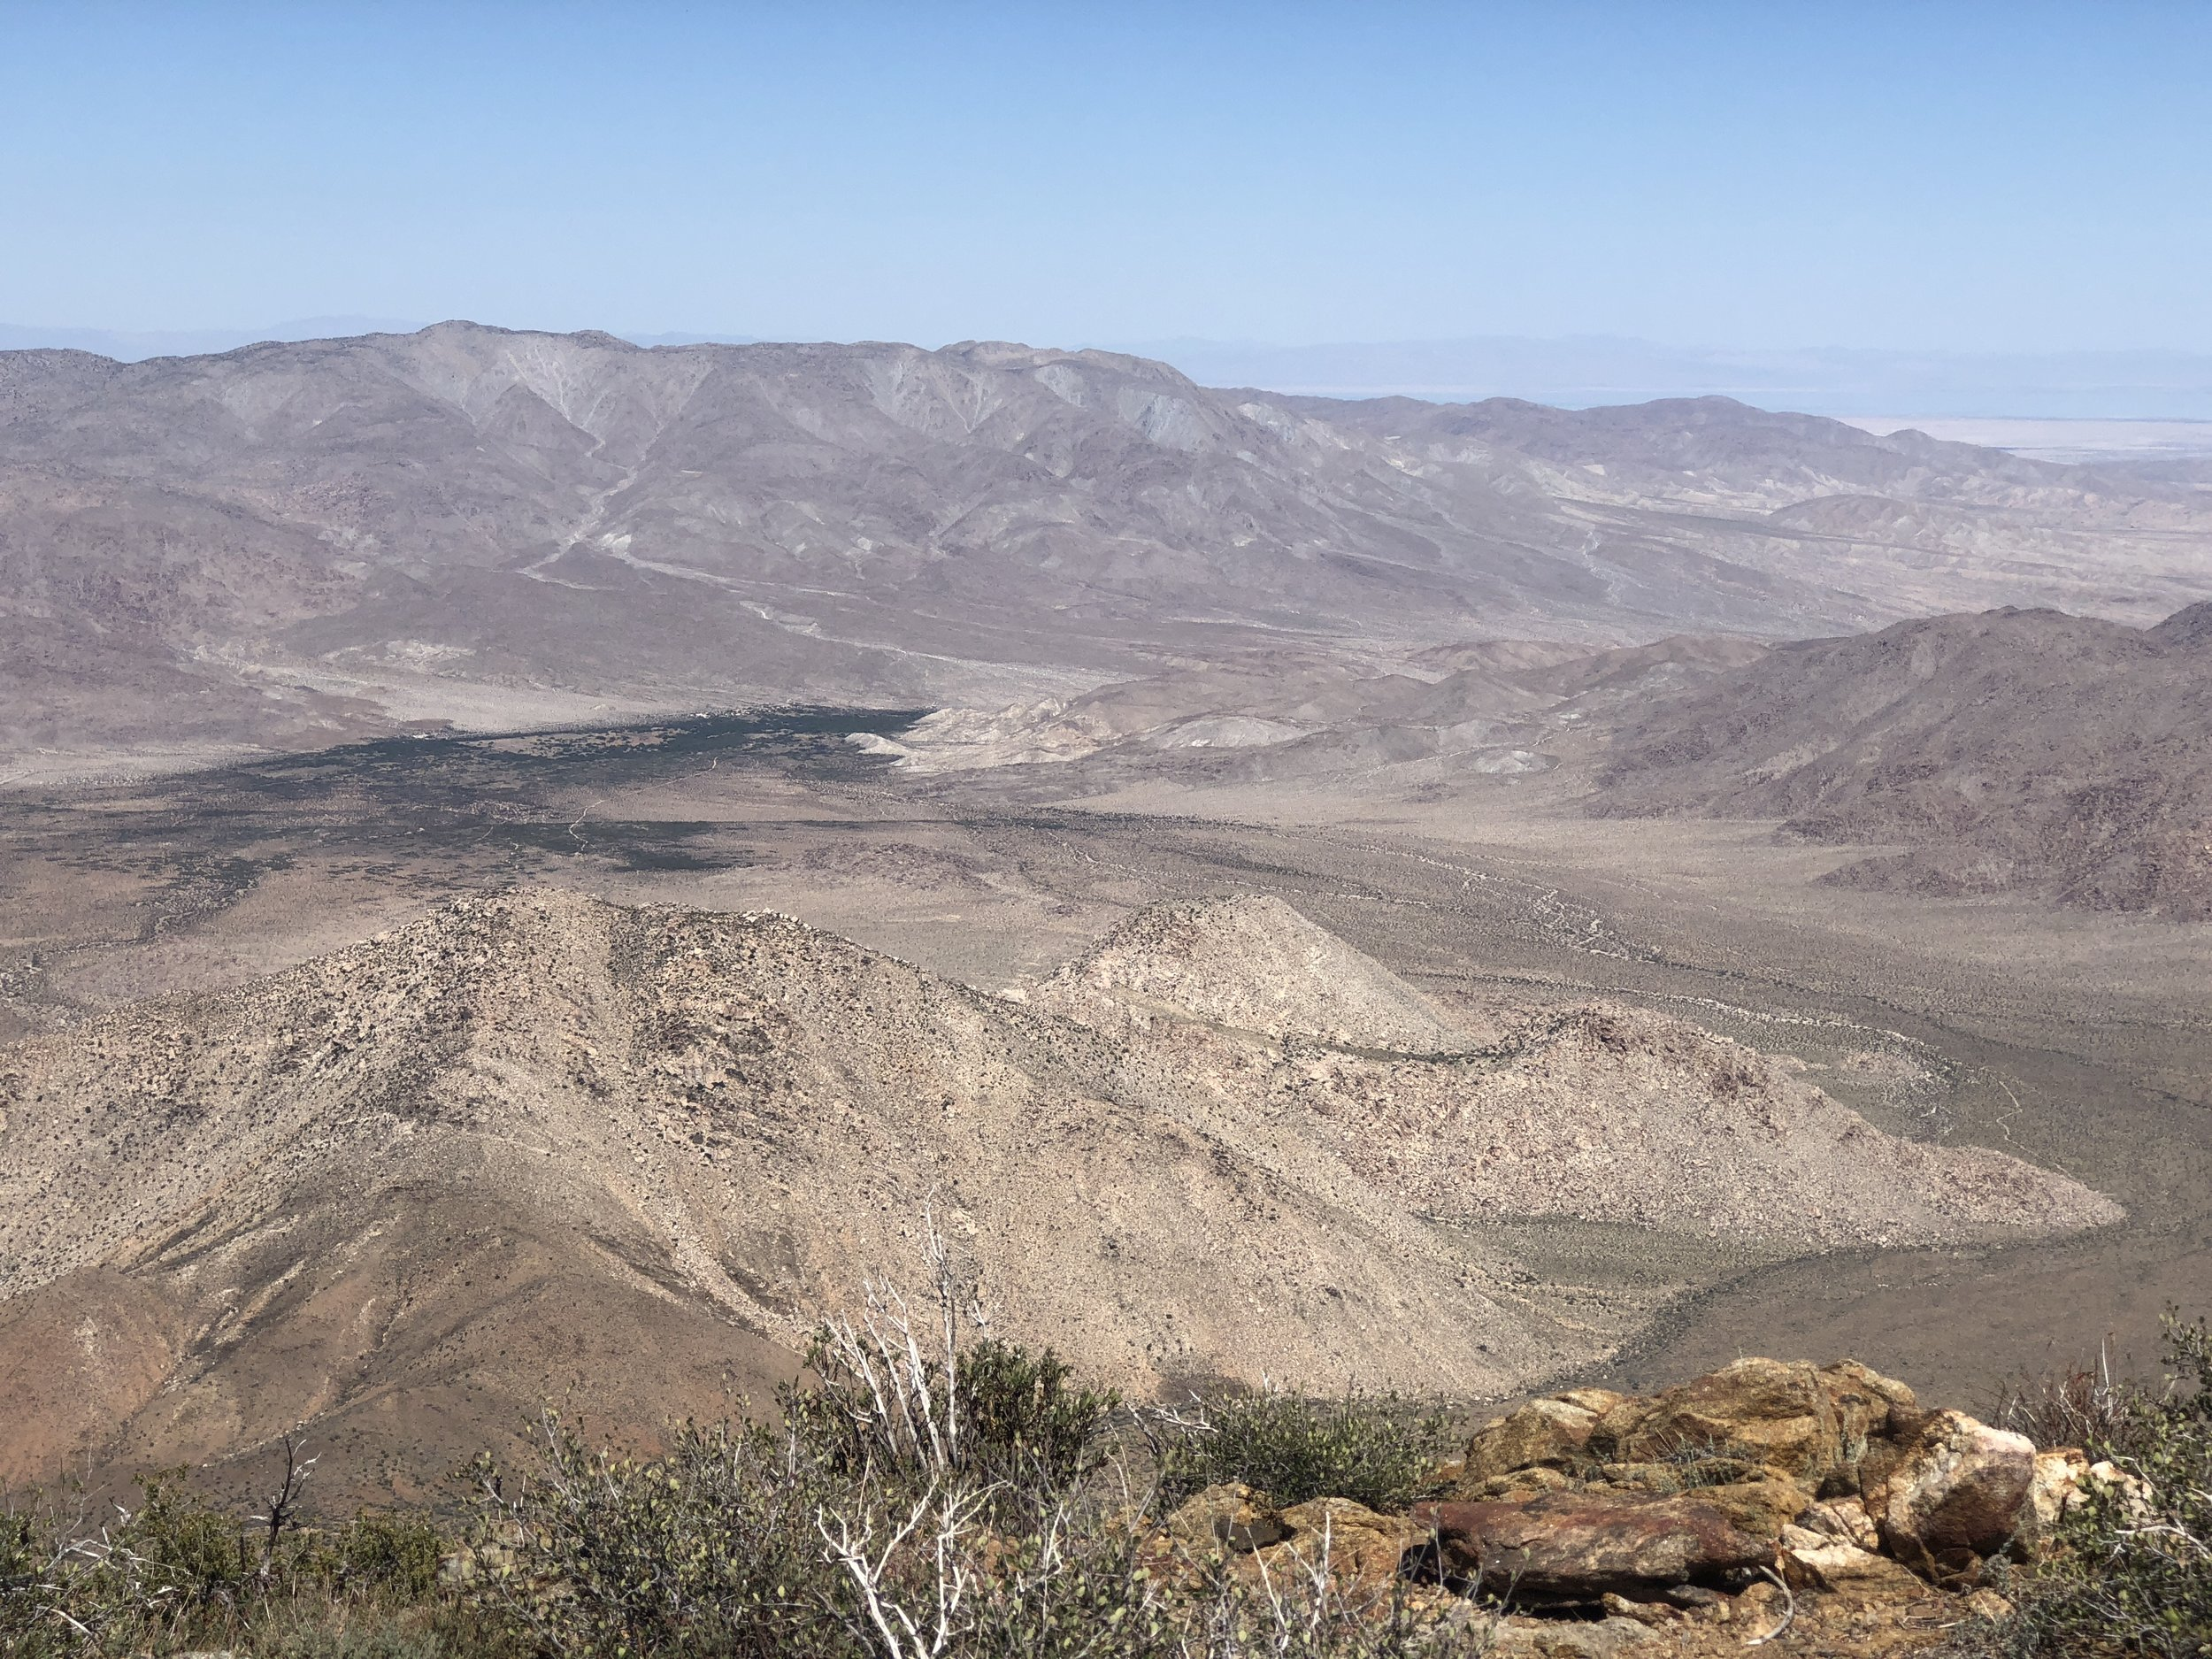 Looking northeast from the PCT.